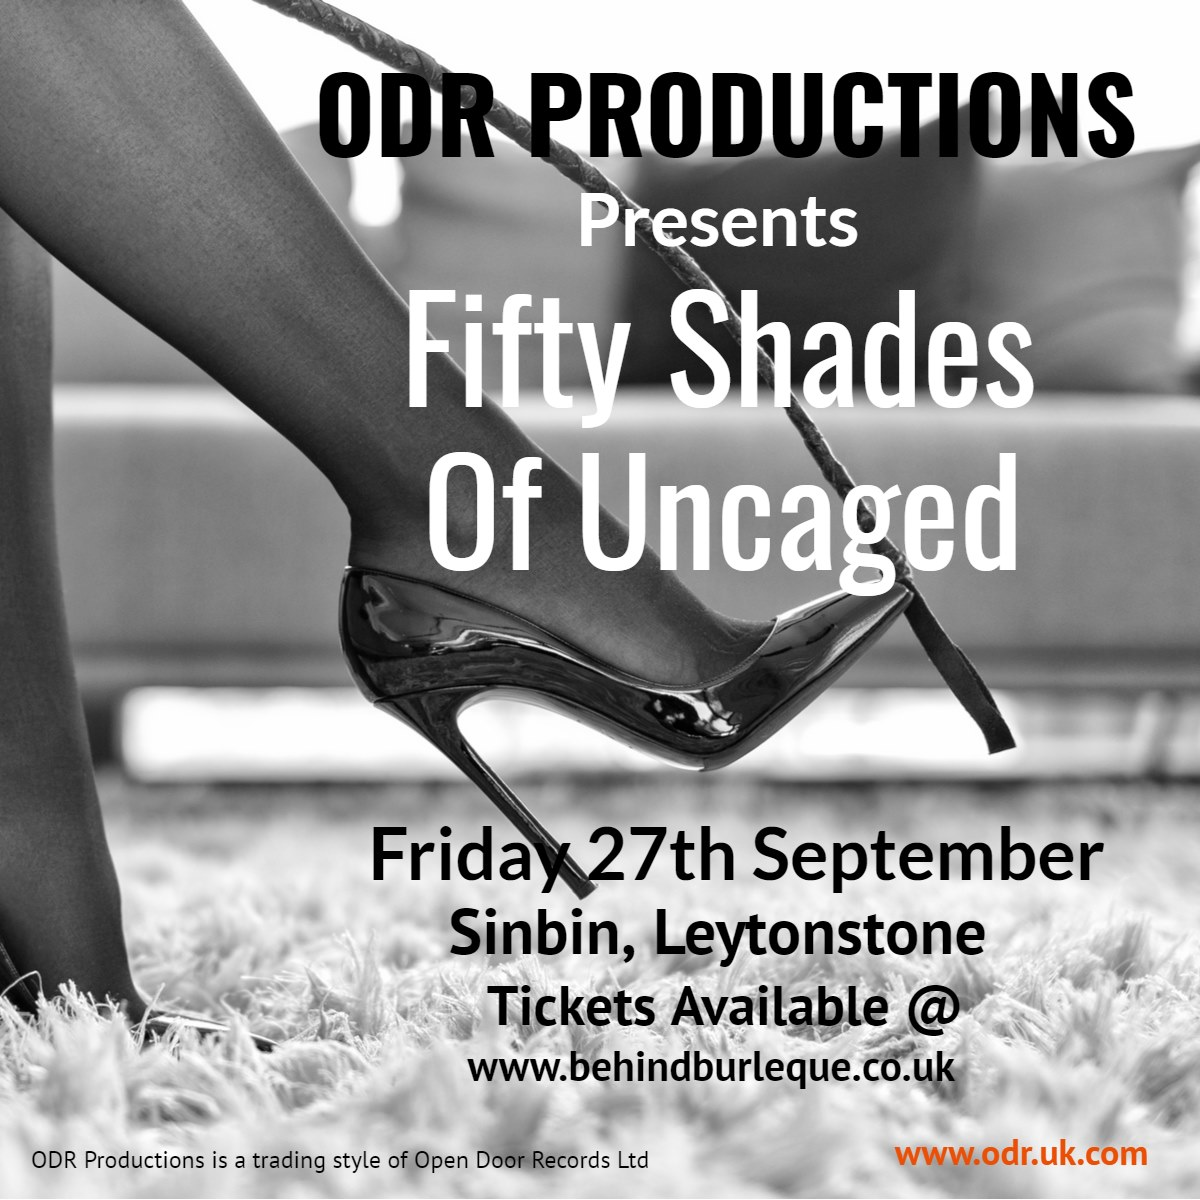 Uncaged London presents: Fifty Shades of Uncaged